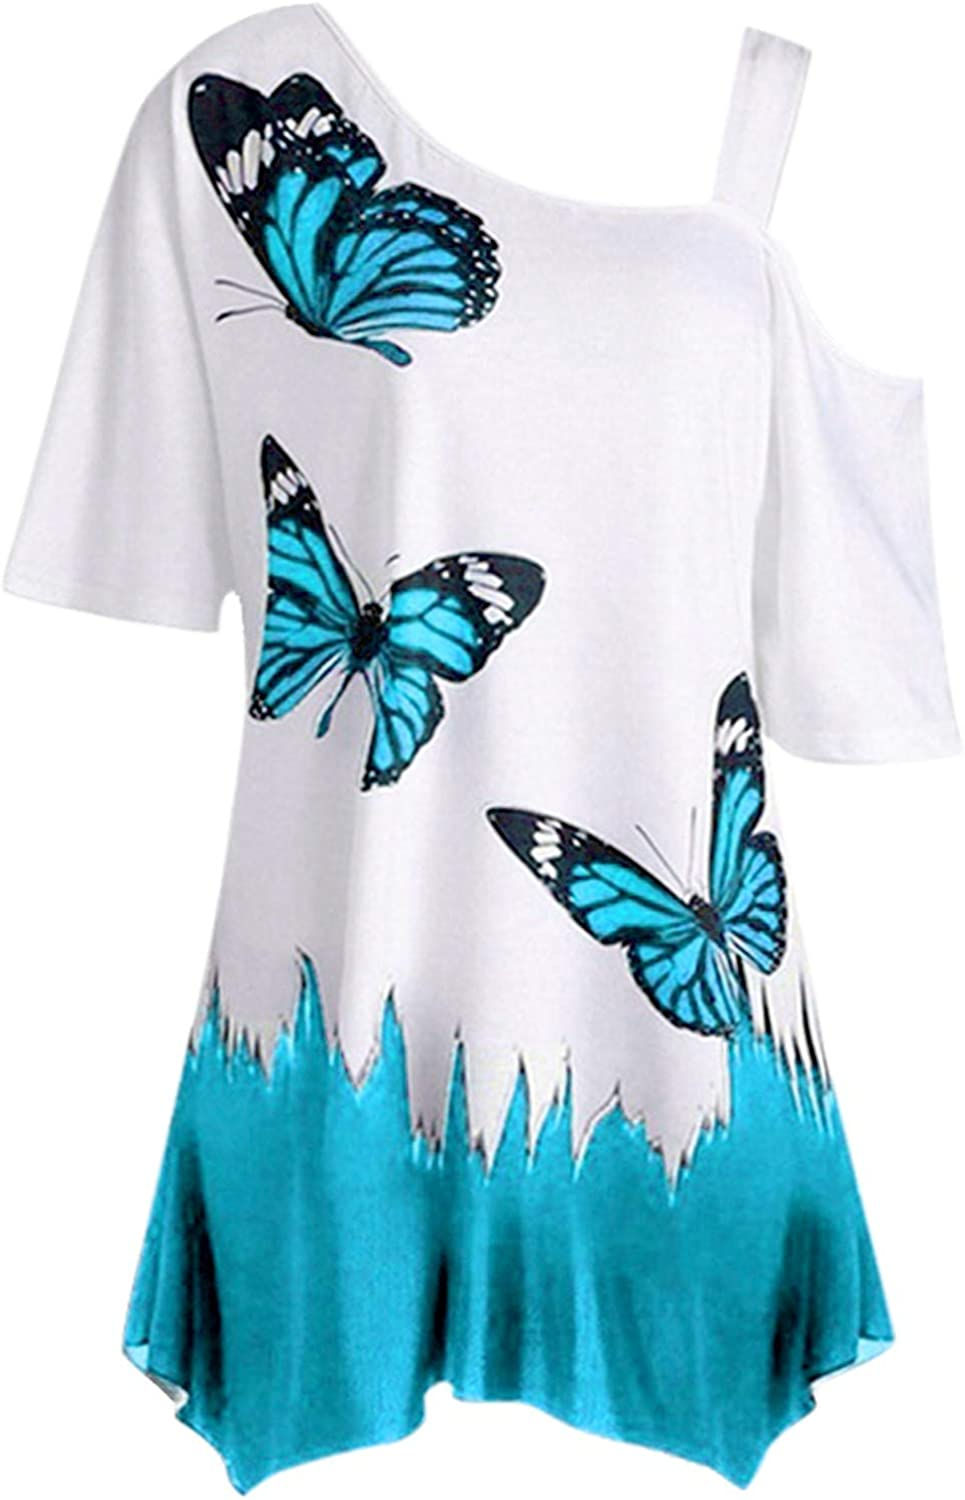 Casual Blouse for Women One Shoulder Striped Butterfly Print Loose Short Sleeve Elegant T-Shirt Tops for Ladies